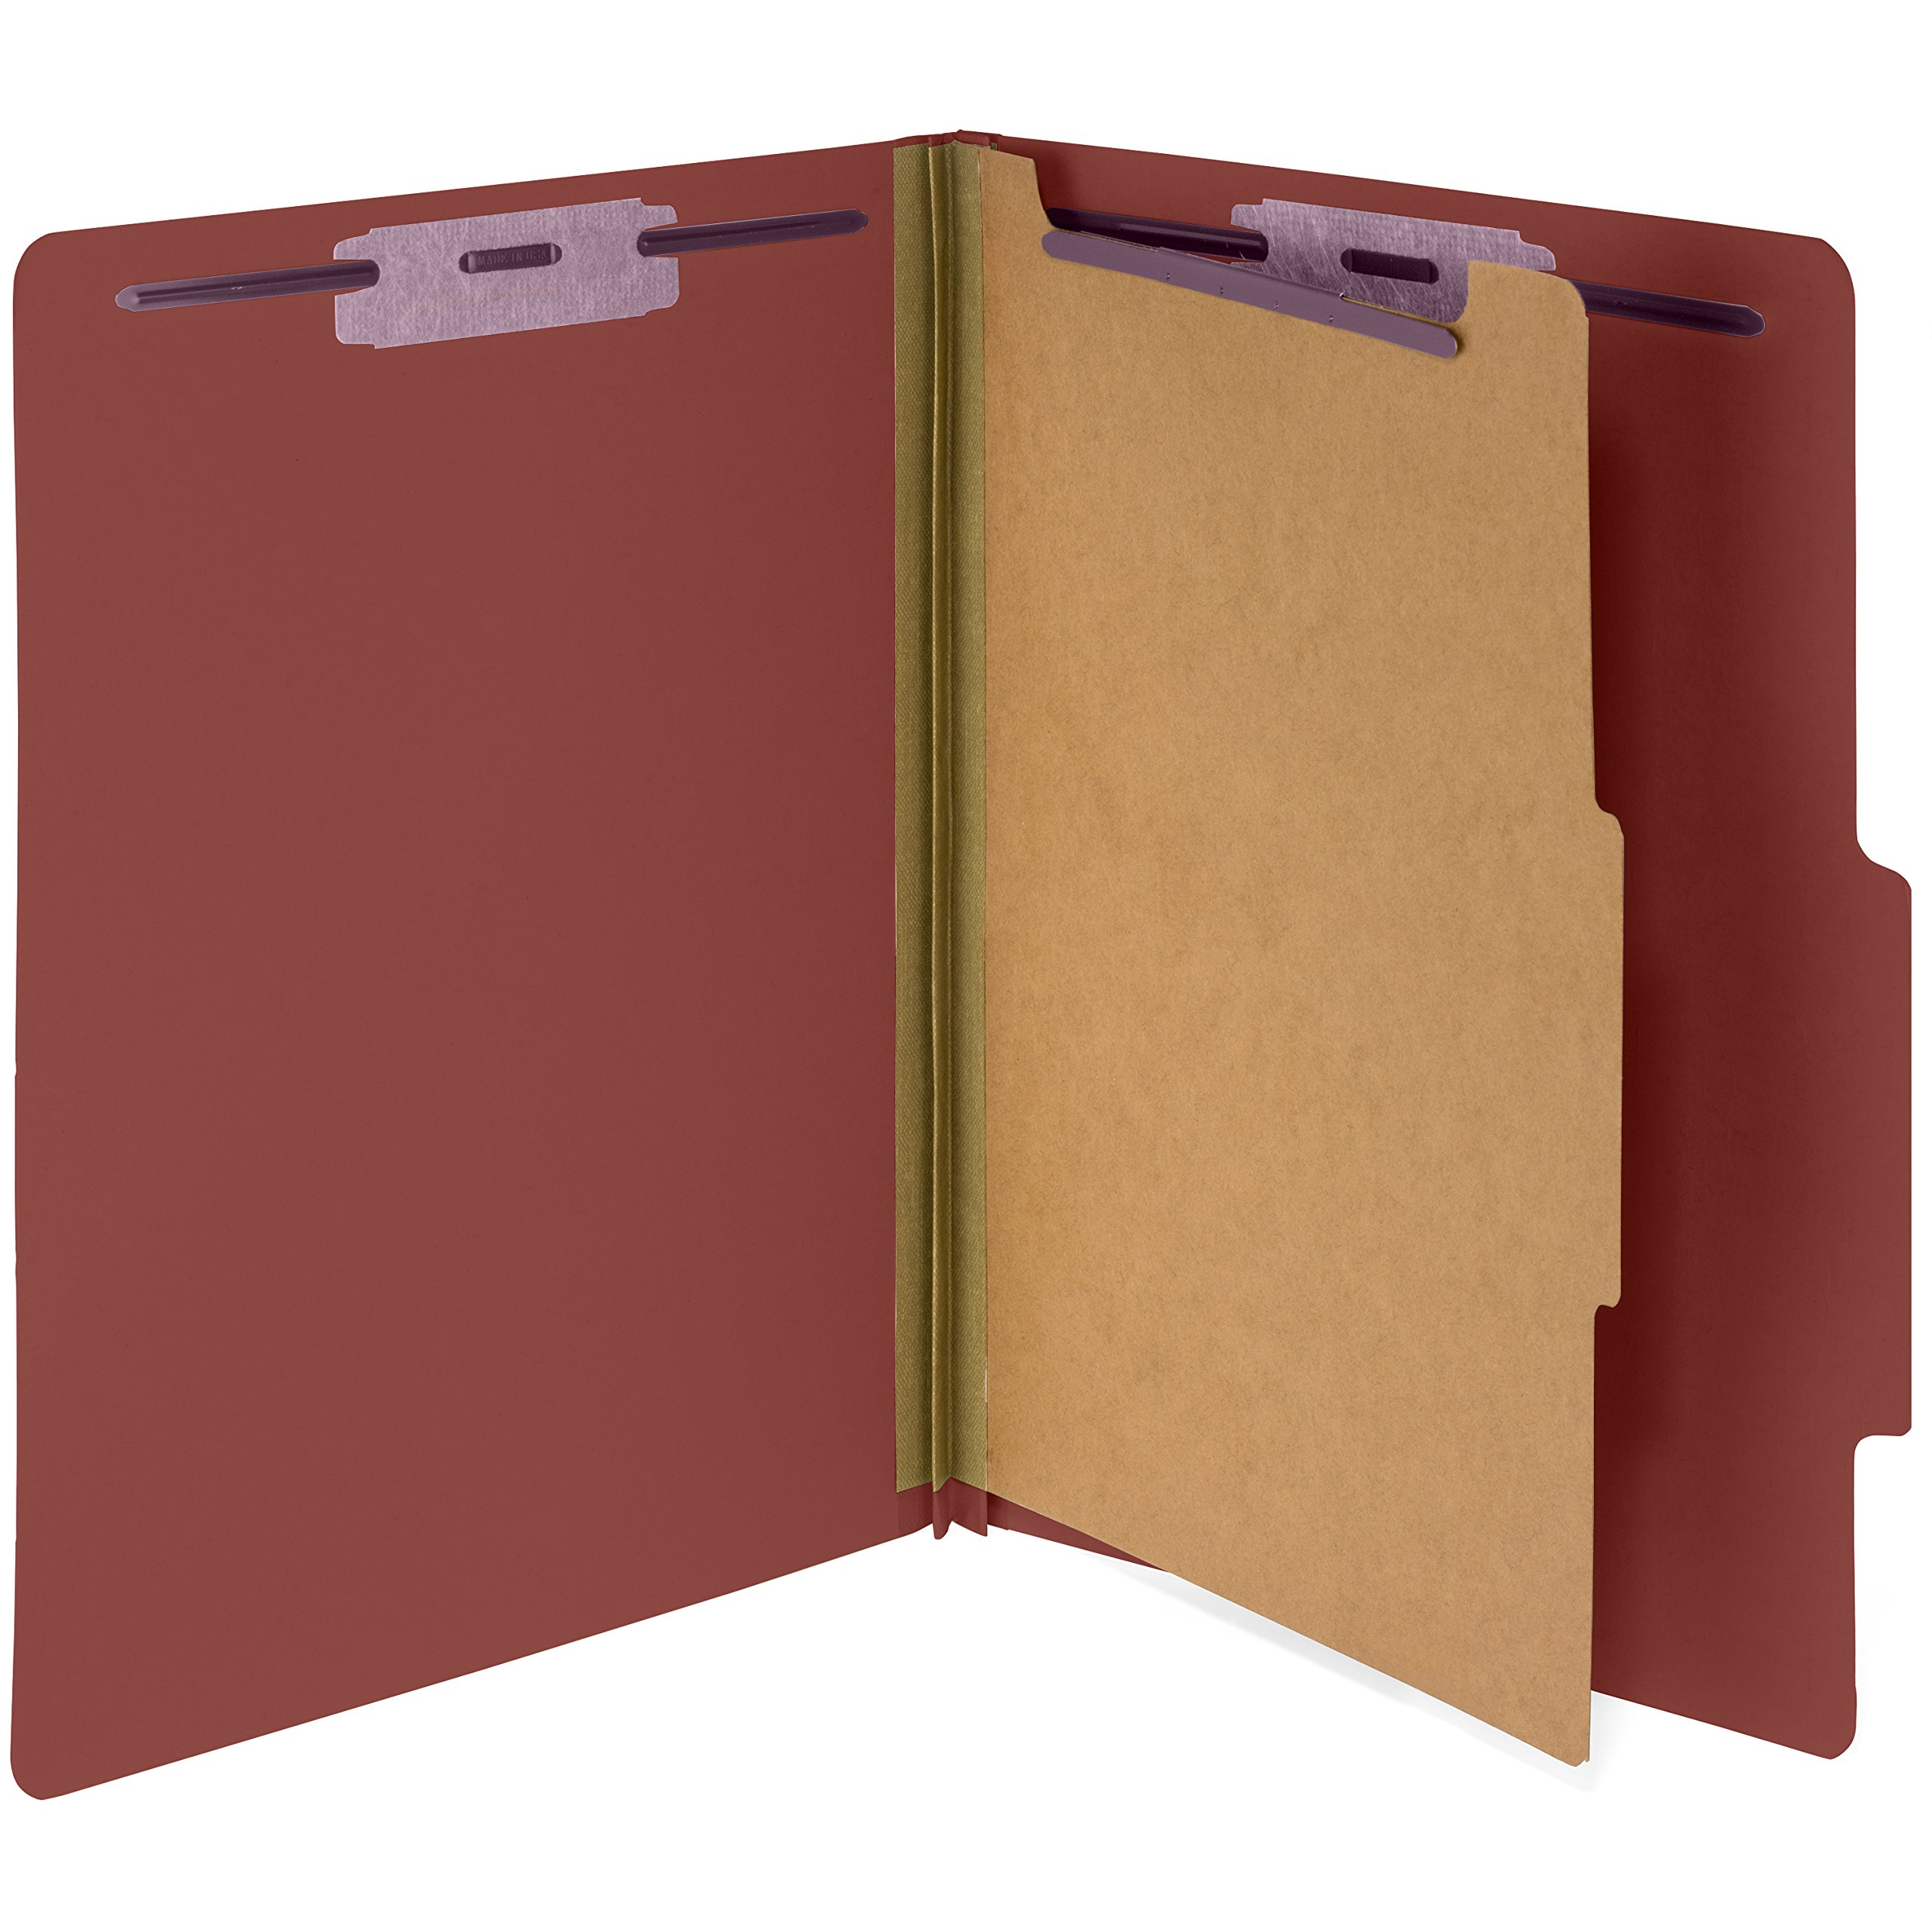 10 Letter Size Red Classification Folders, 1 Divider, 2 in Tyvek Expansions, Durable 2 prongs designed to organize Standard Medical Files, Office reports, Letter Size, Red, 10 PACK